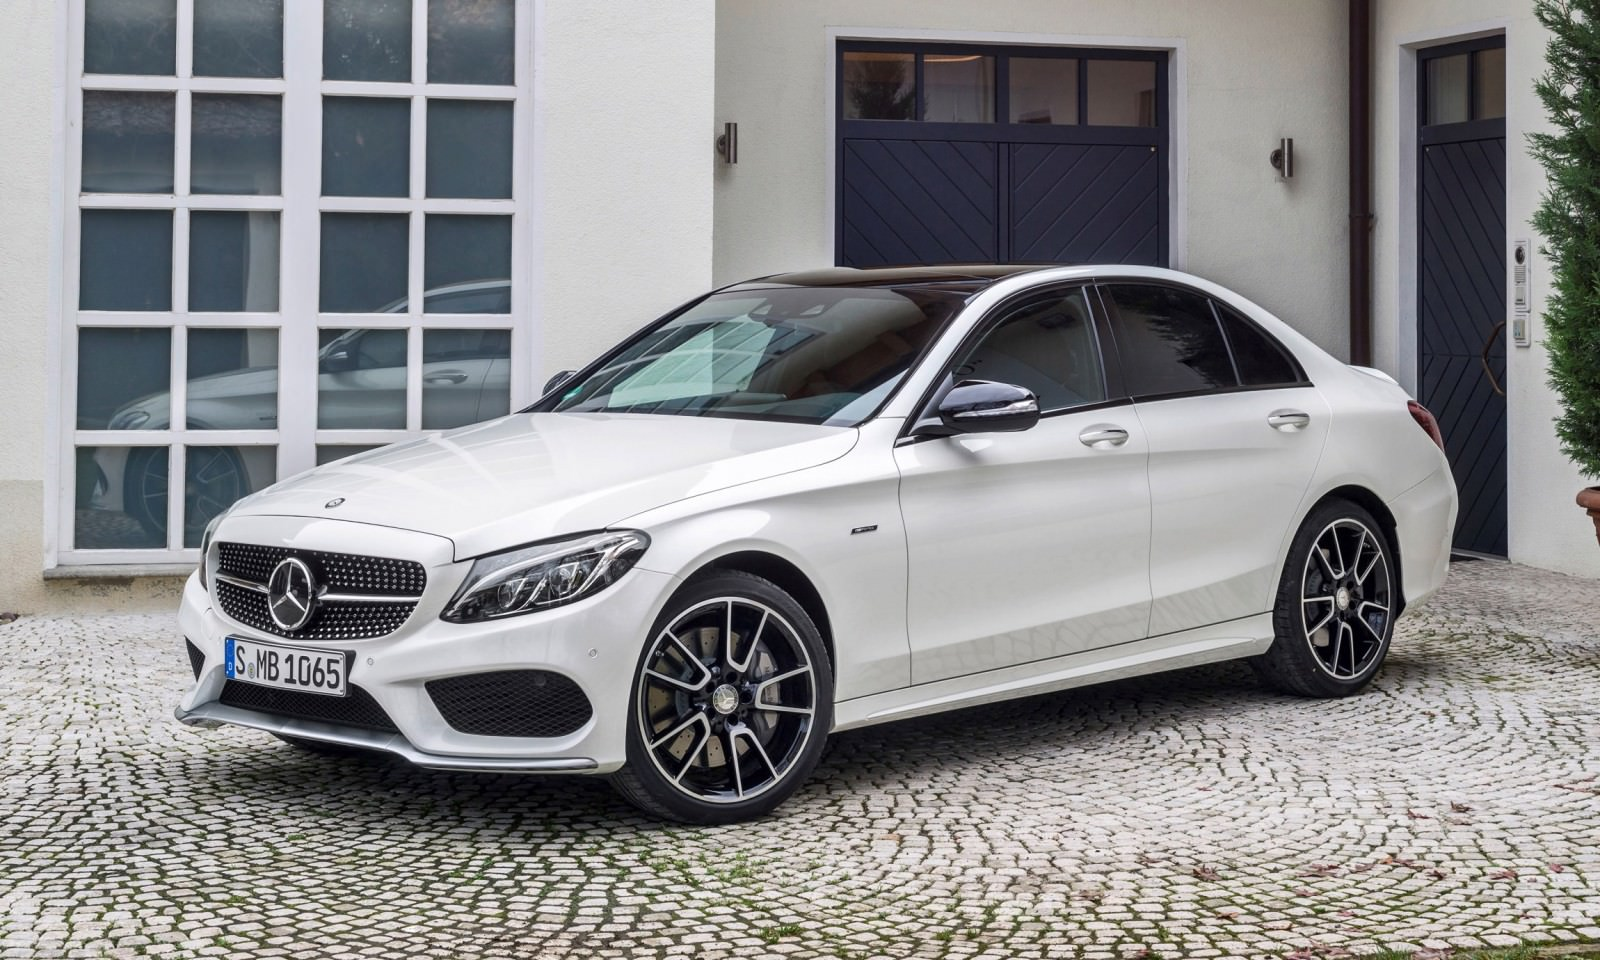 2015 mercedes benz c450 amg 4matic for Mercedes benz c450